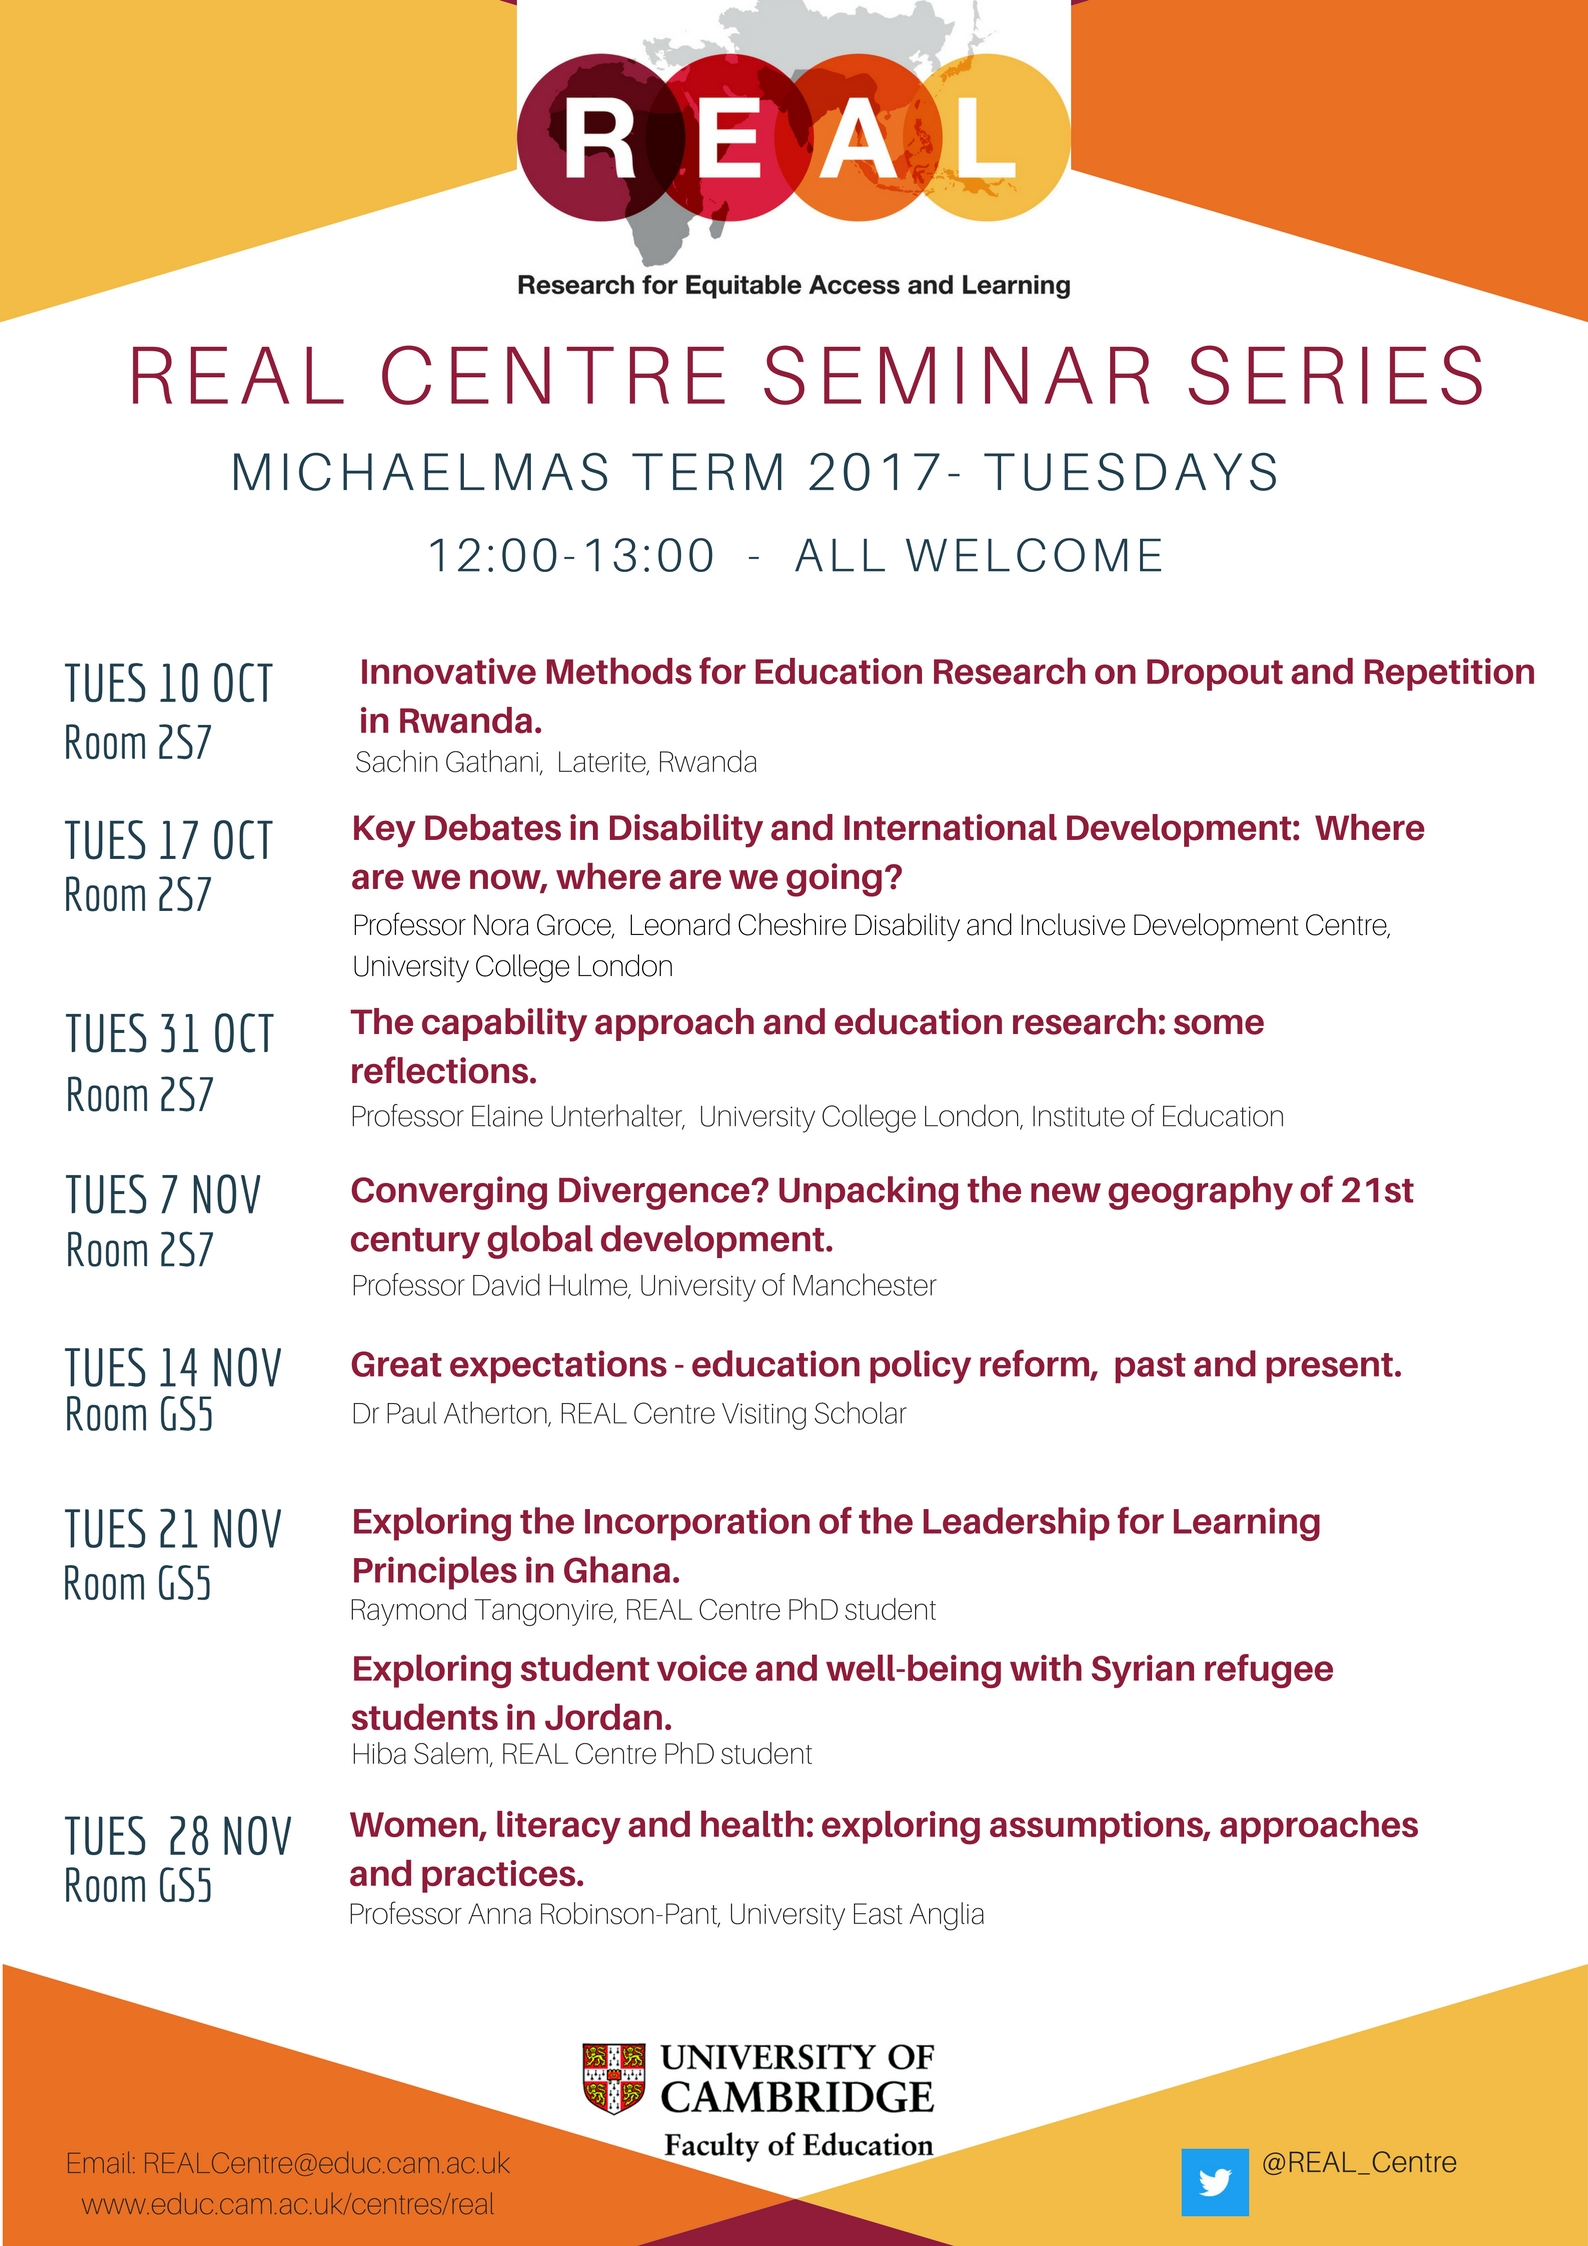 REAL Centre Seminars